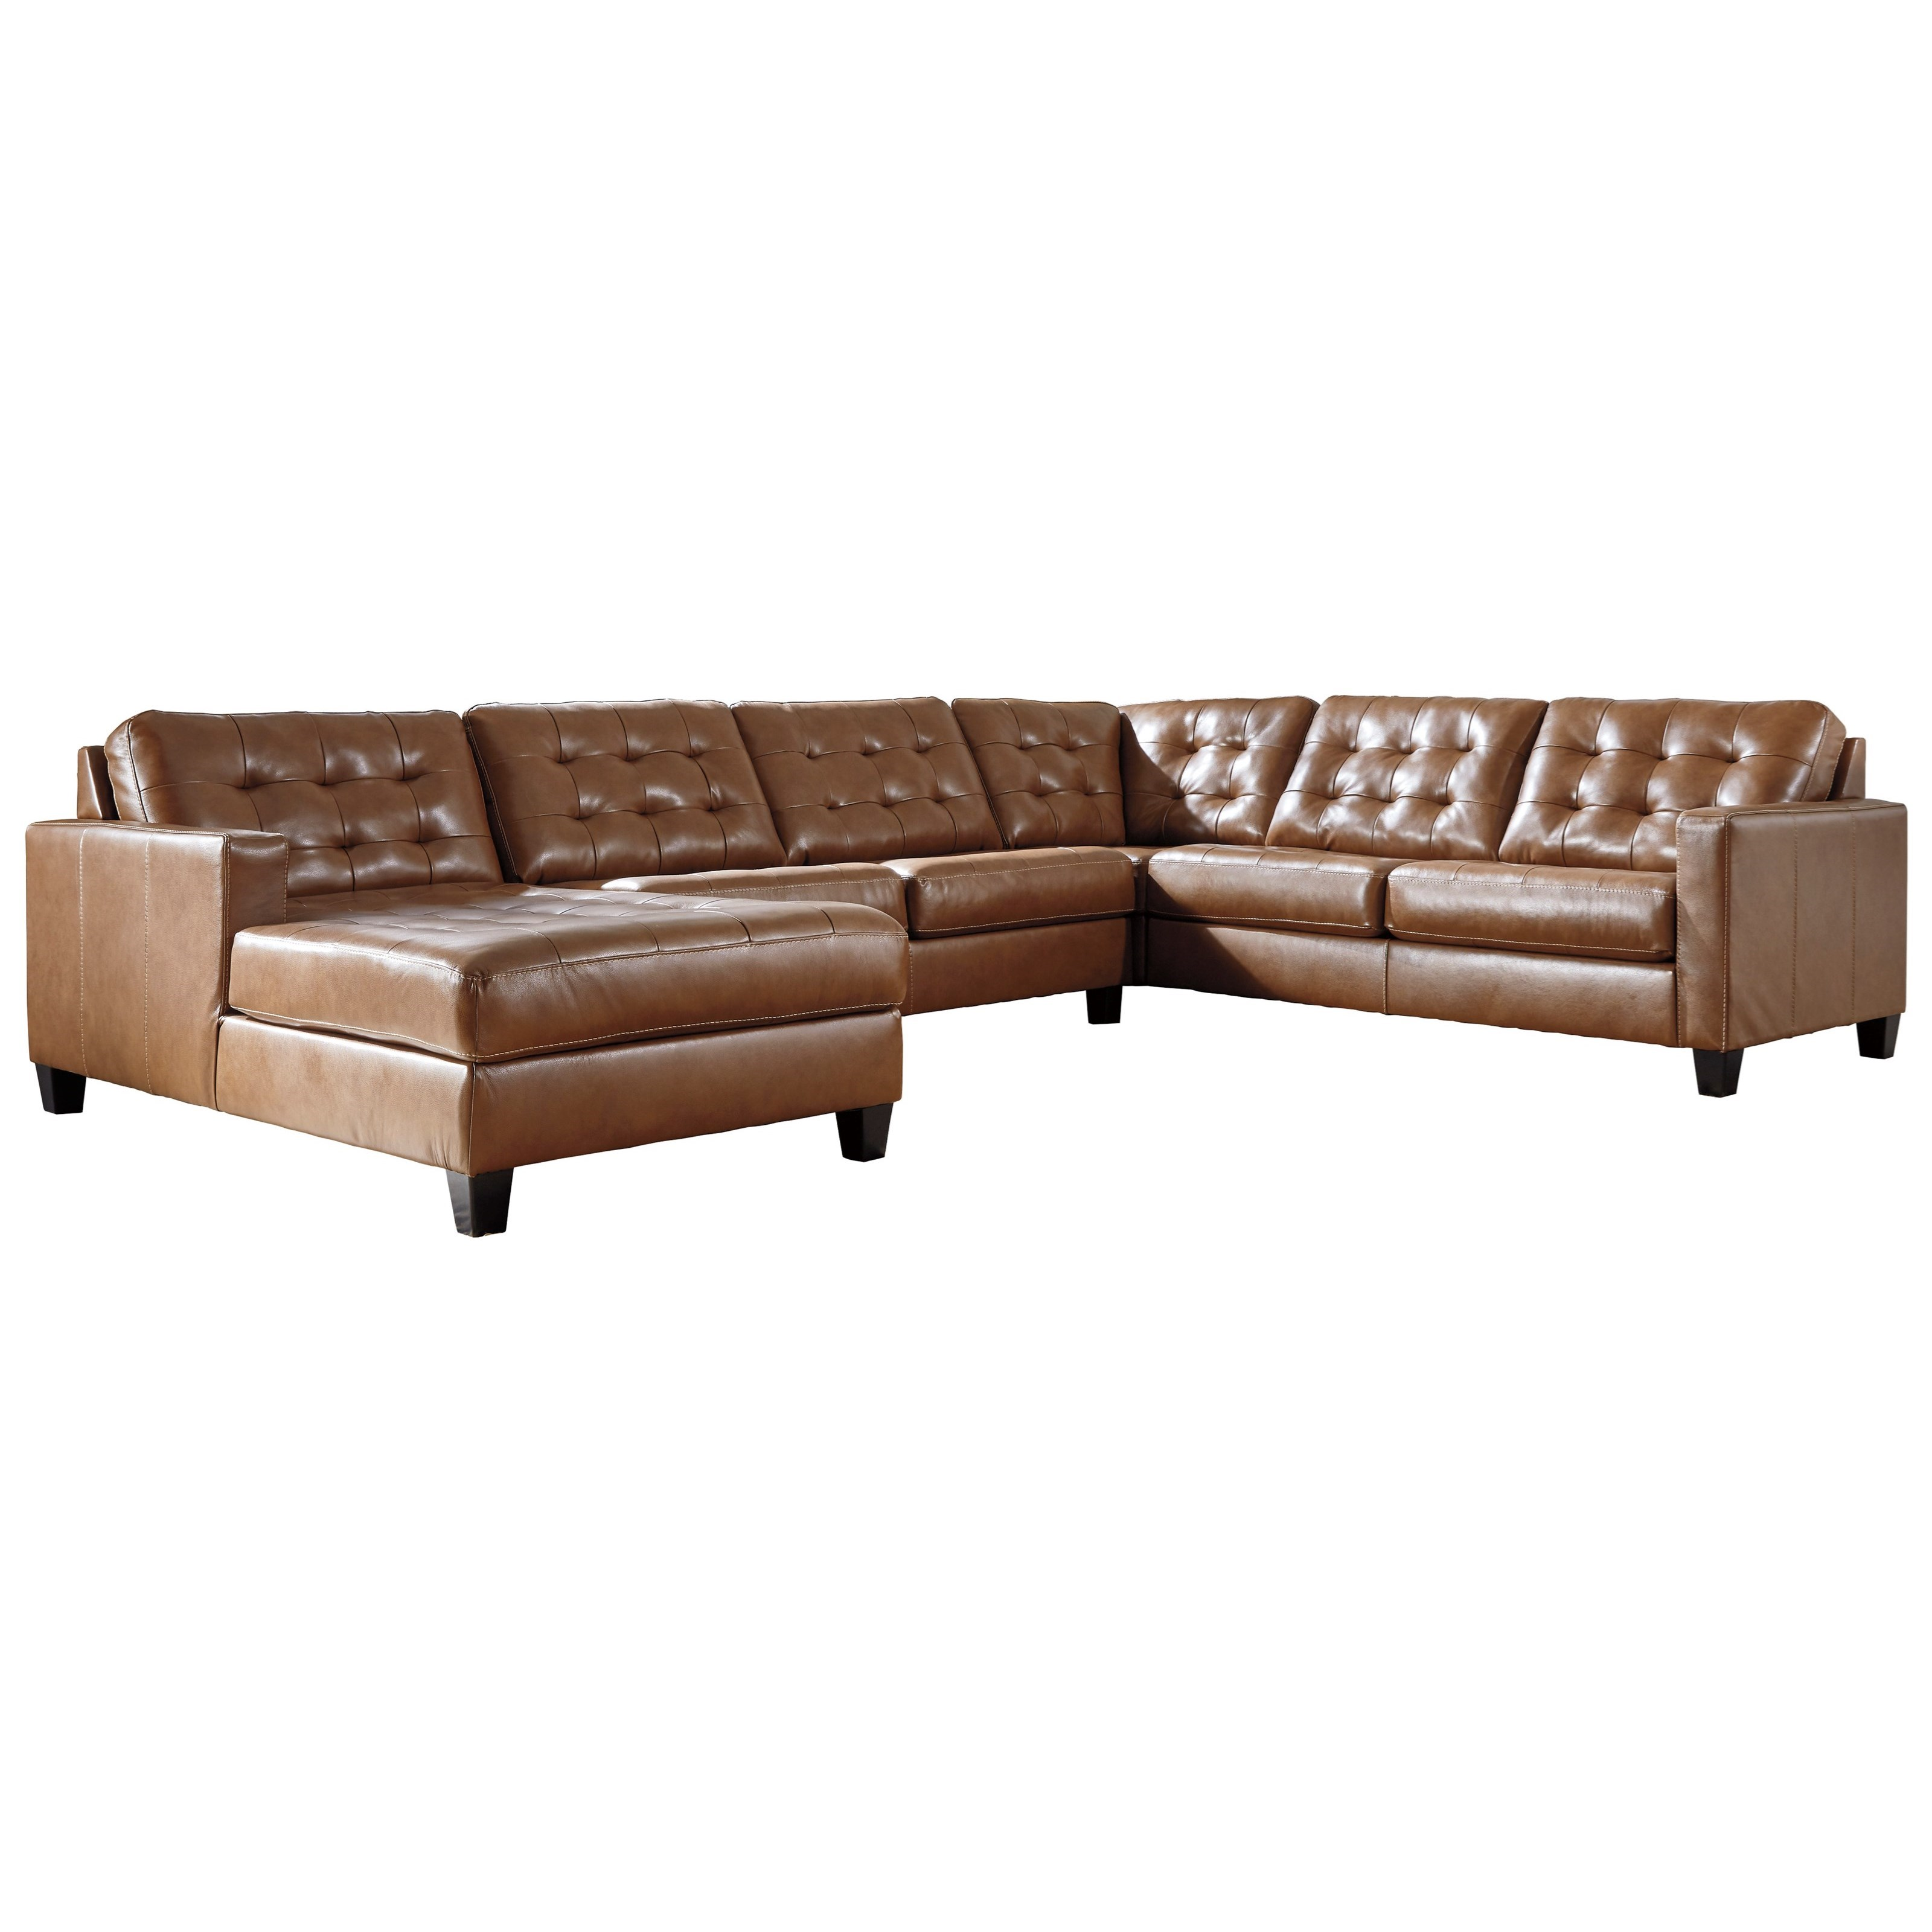 Baskove 4-Piece Sectional by Signature Design by Ashley at Value City Furniture